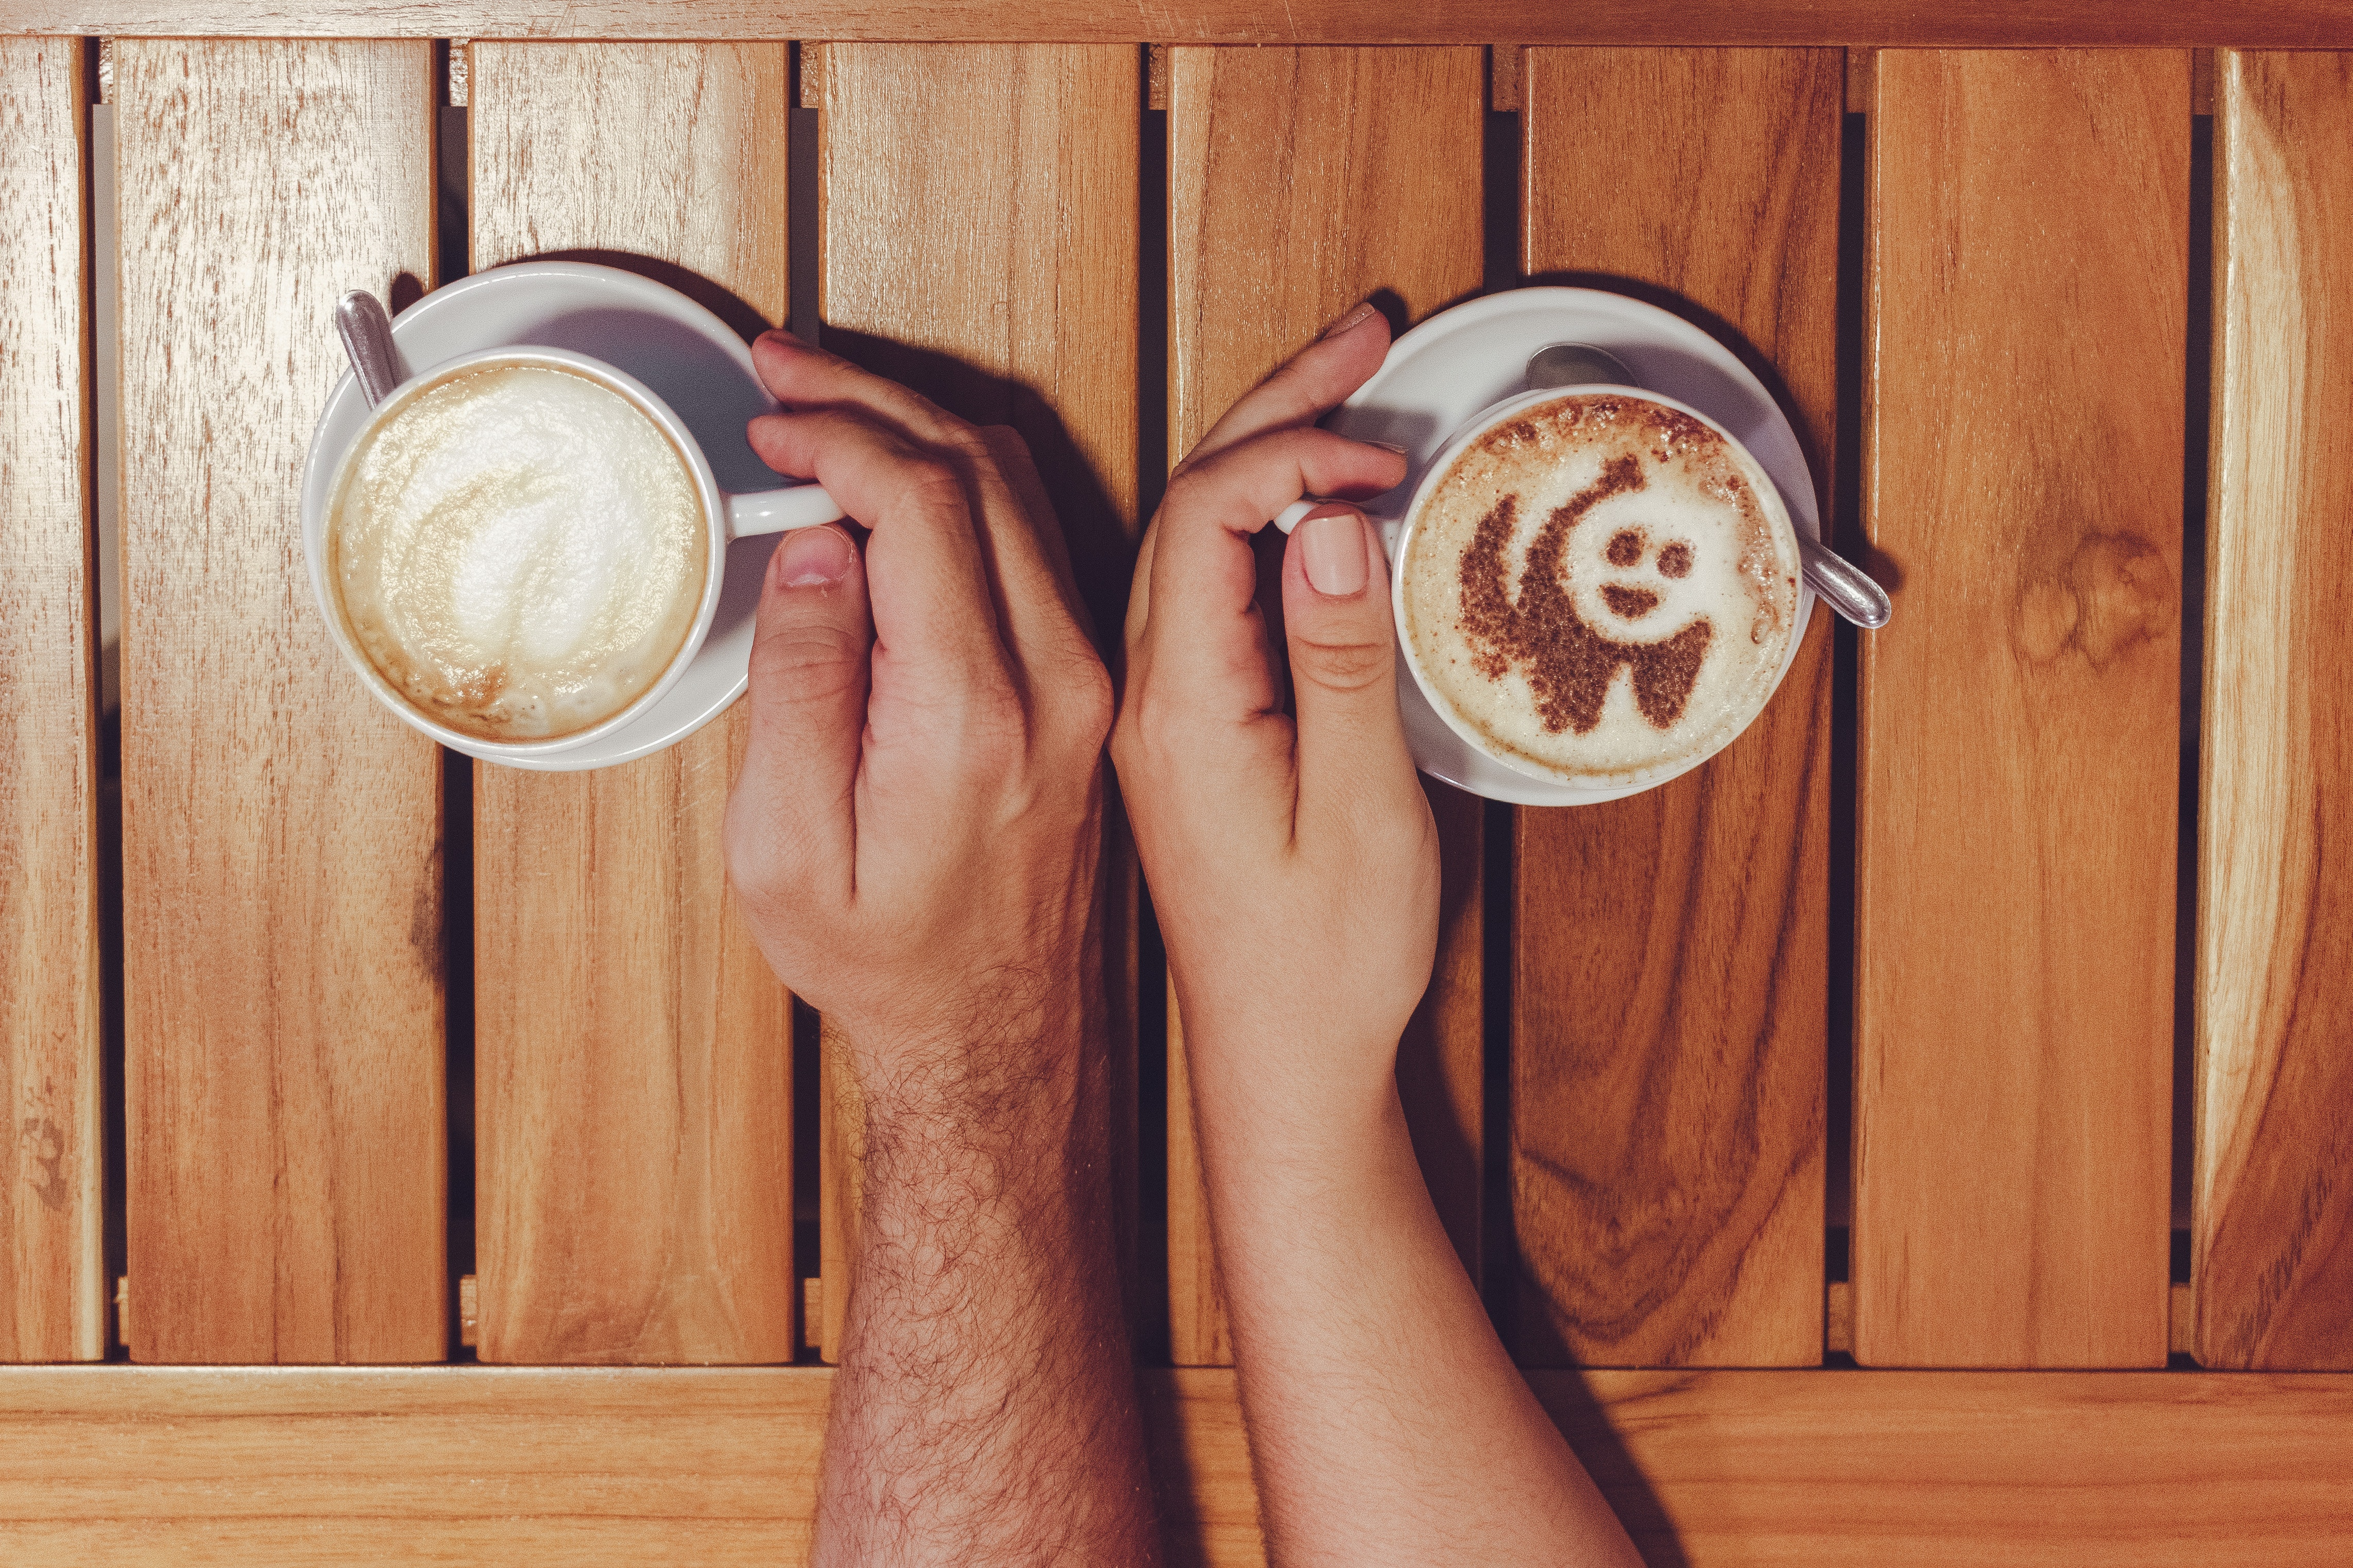 Person Holding Cup of Coffees on Table · Free Stock Photo